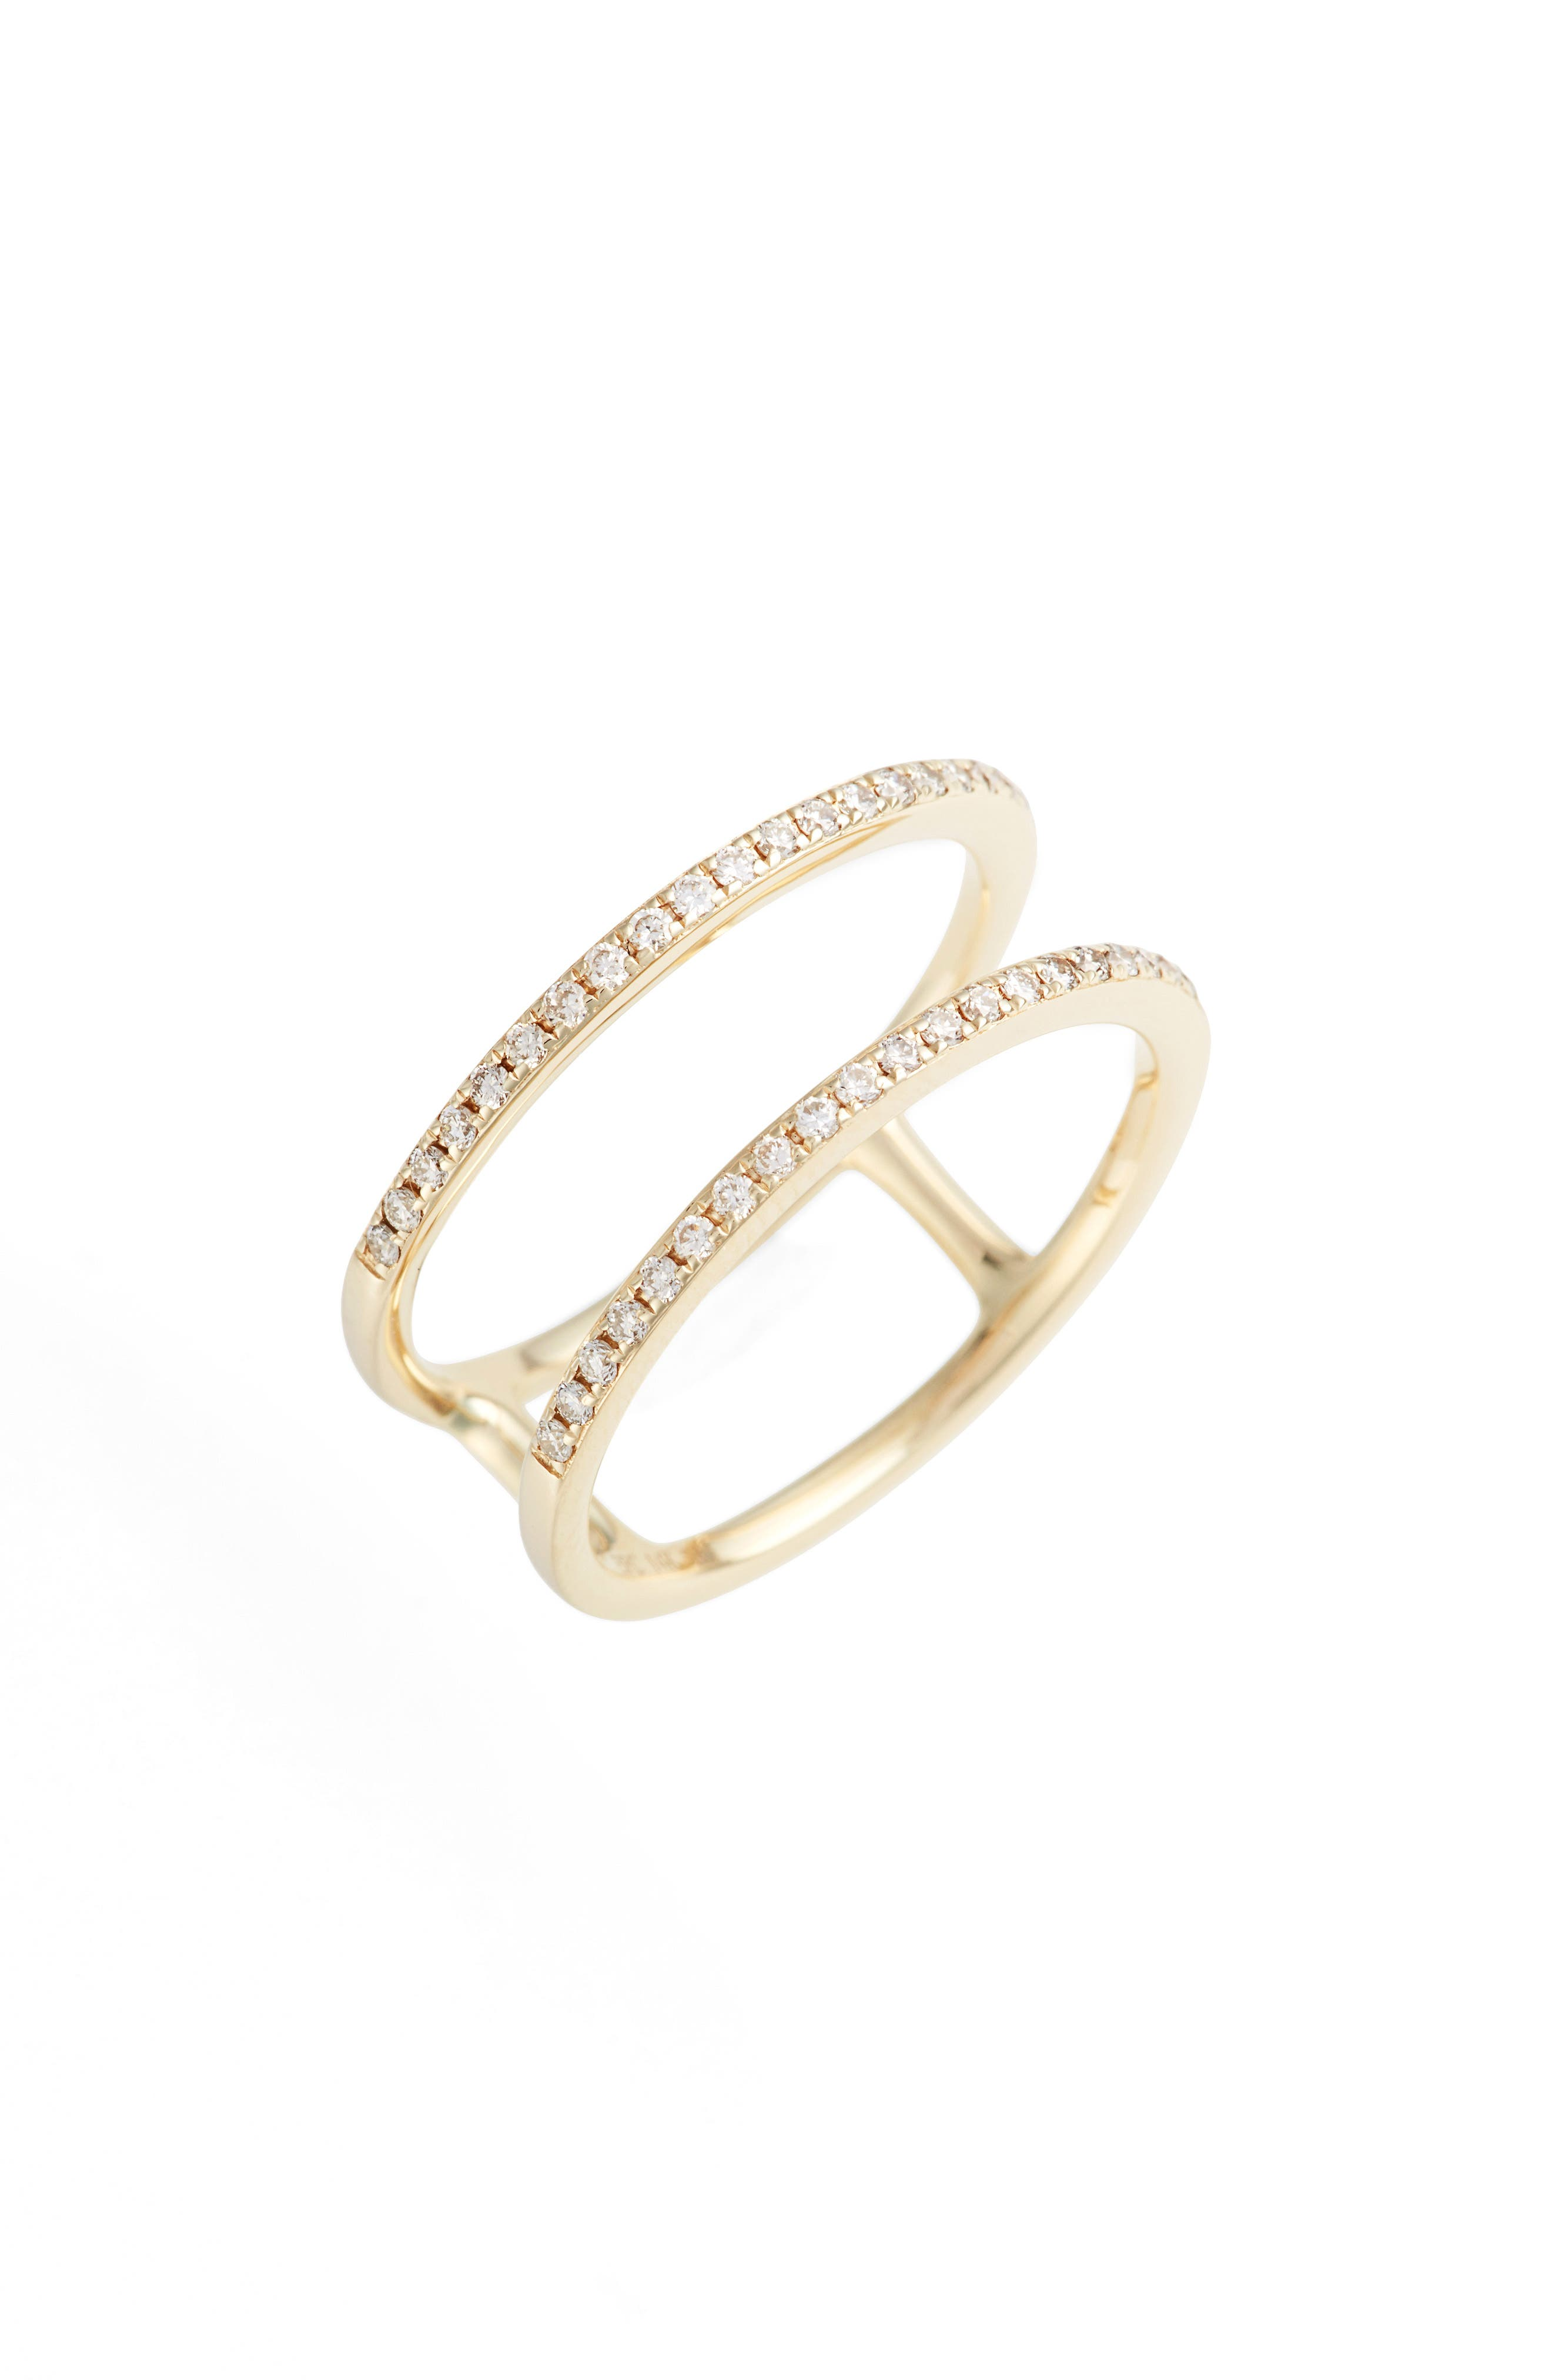 Double Row Diamond Ring,                             Main thumbnail 1, color,                             YELLOW GOLD